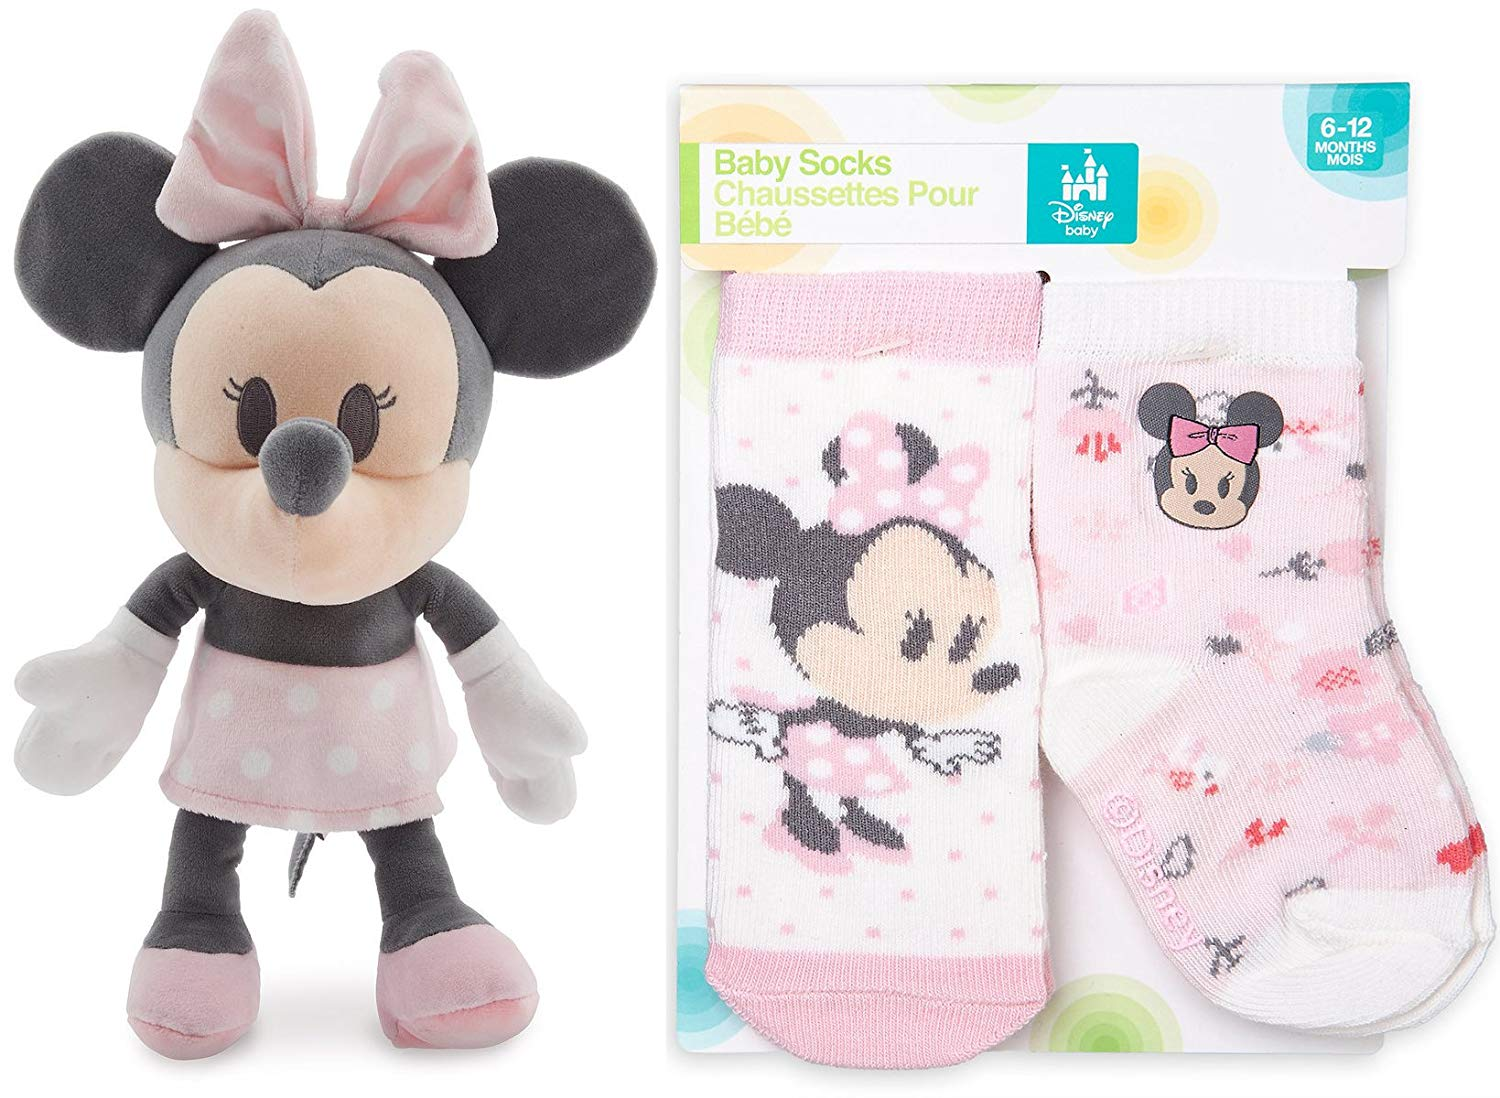 Minnie Mouse Set for Baby 2-Pack Disney Pink Sock Set with Figaro & Minnie Mouse Plush for Baby Velvety Soft Super Cute Collection